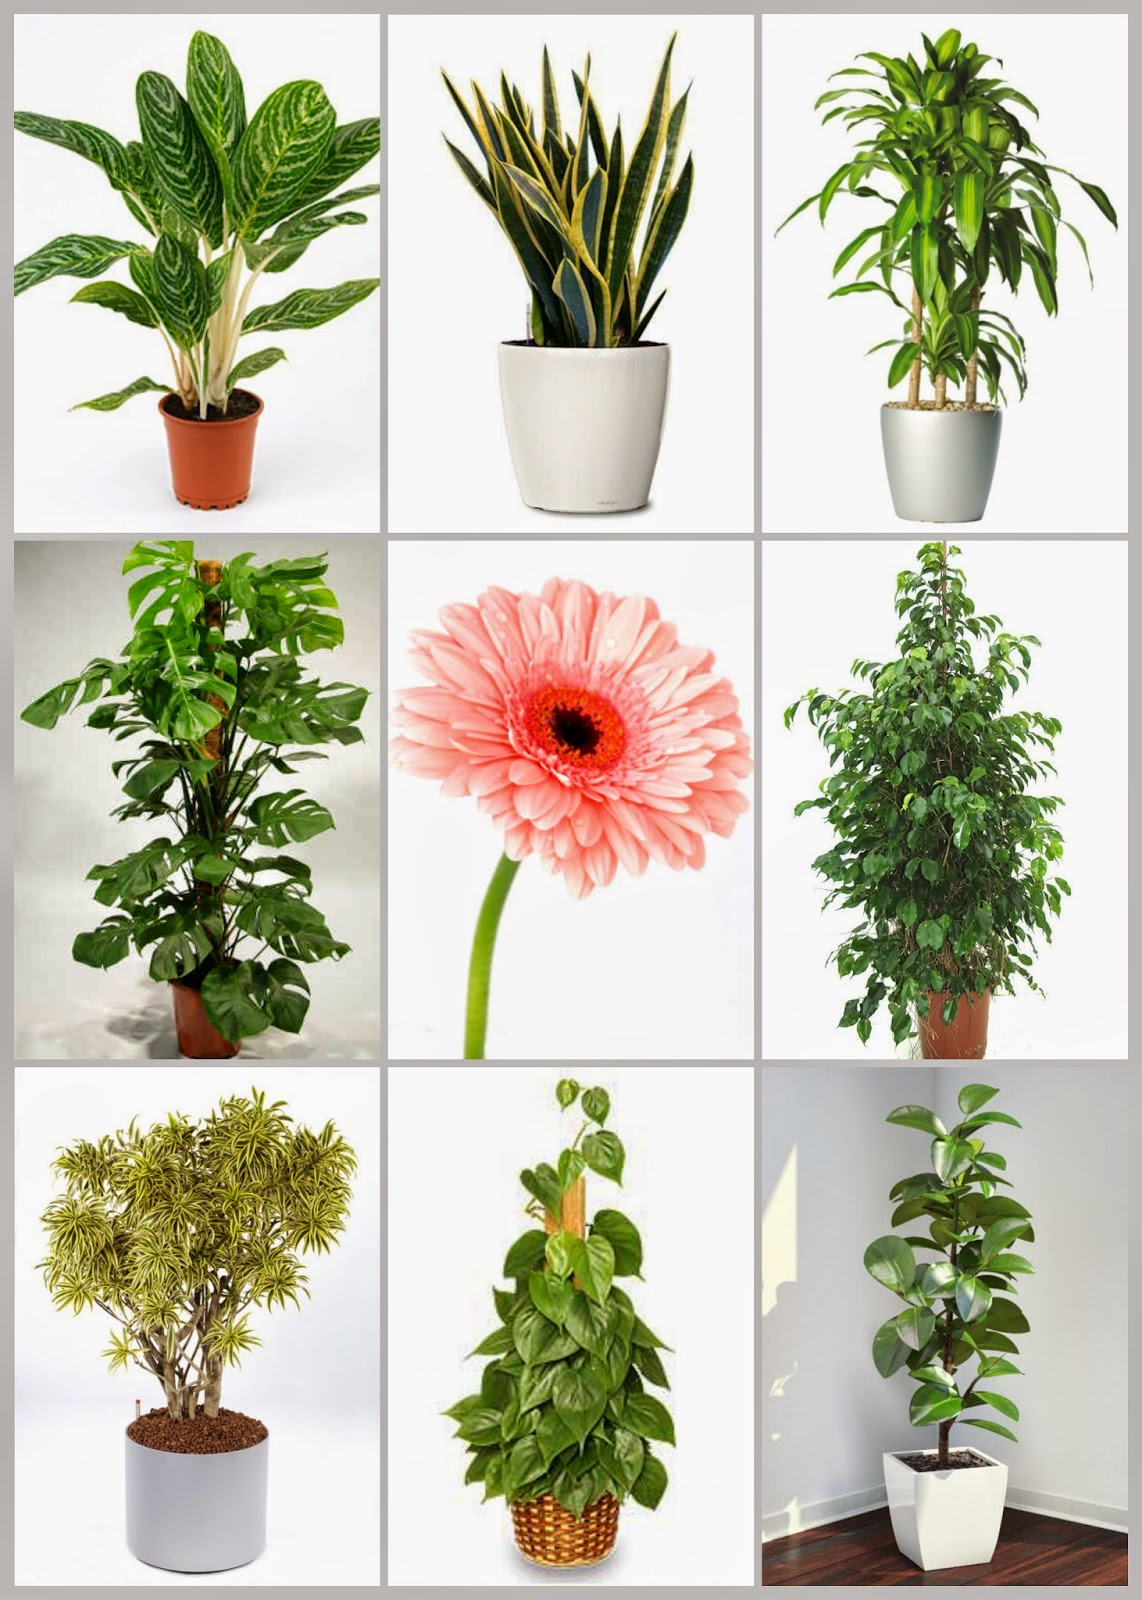 Plantas_de_interior_purificadoras_do_ar